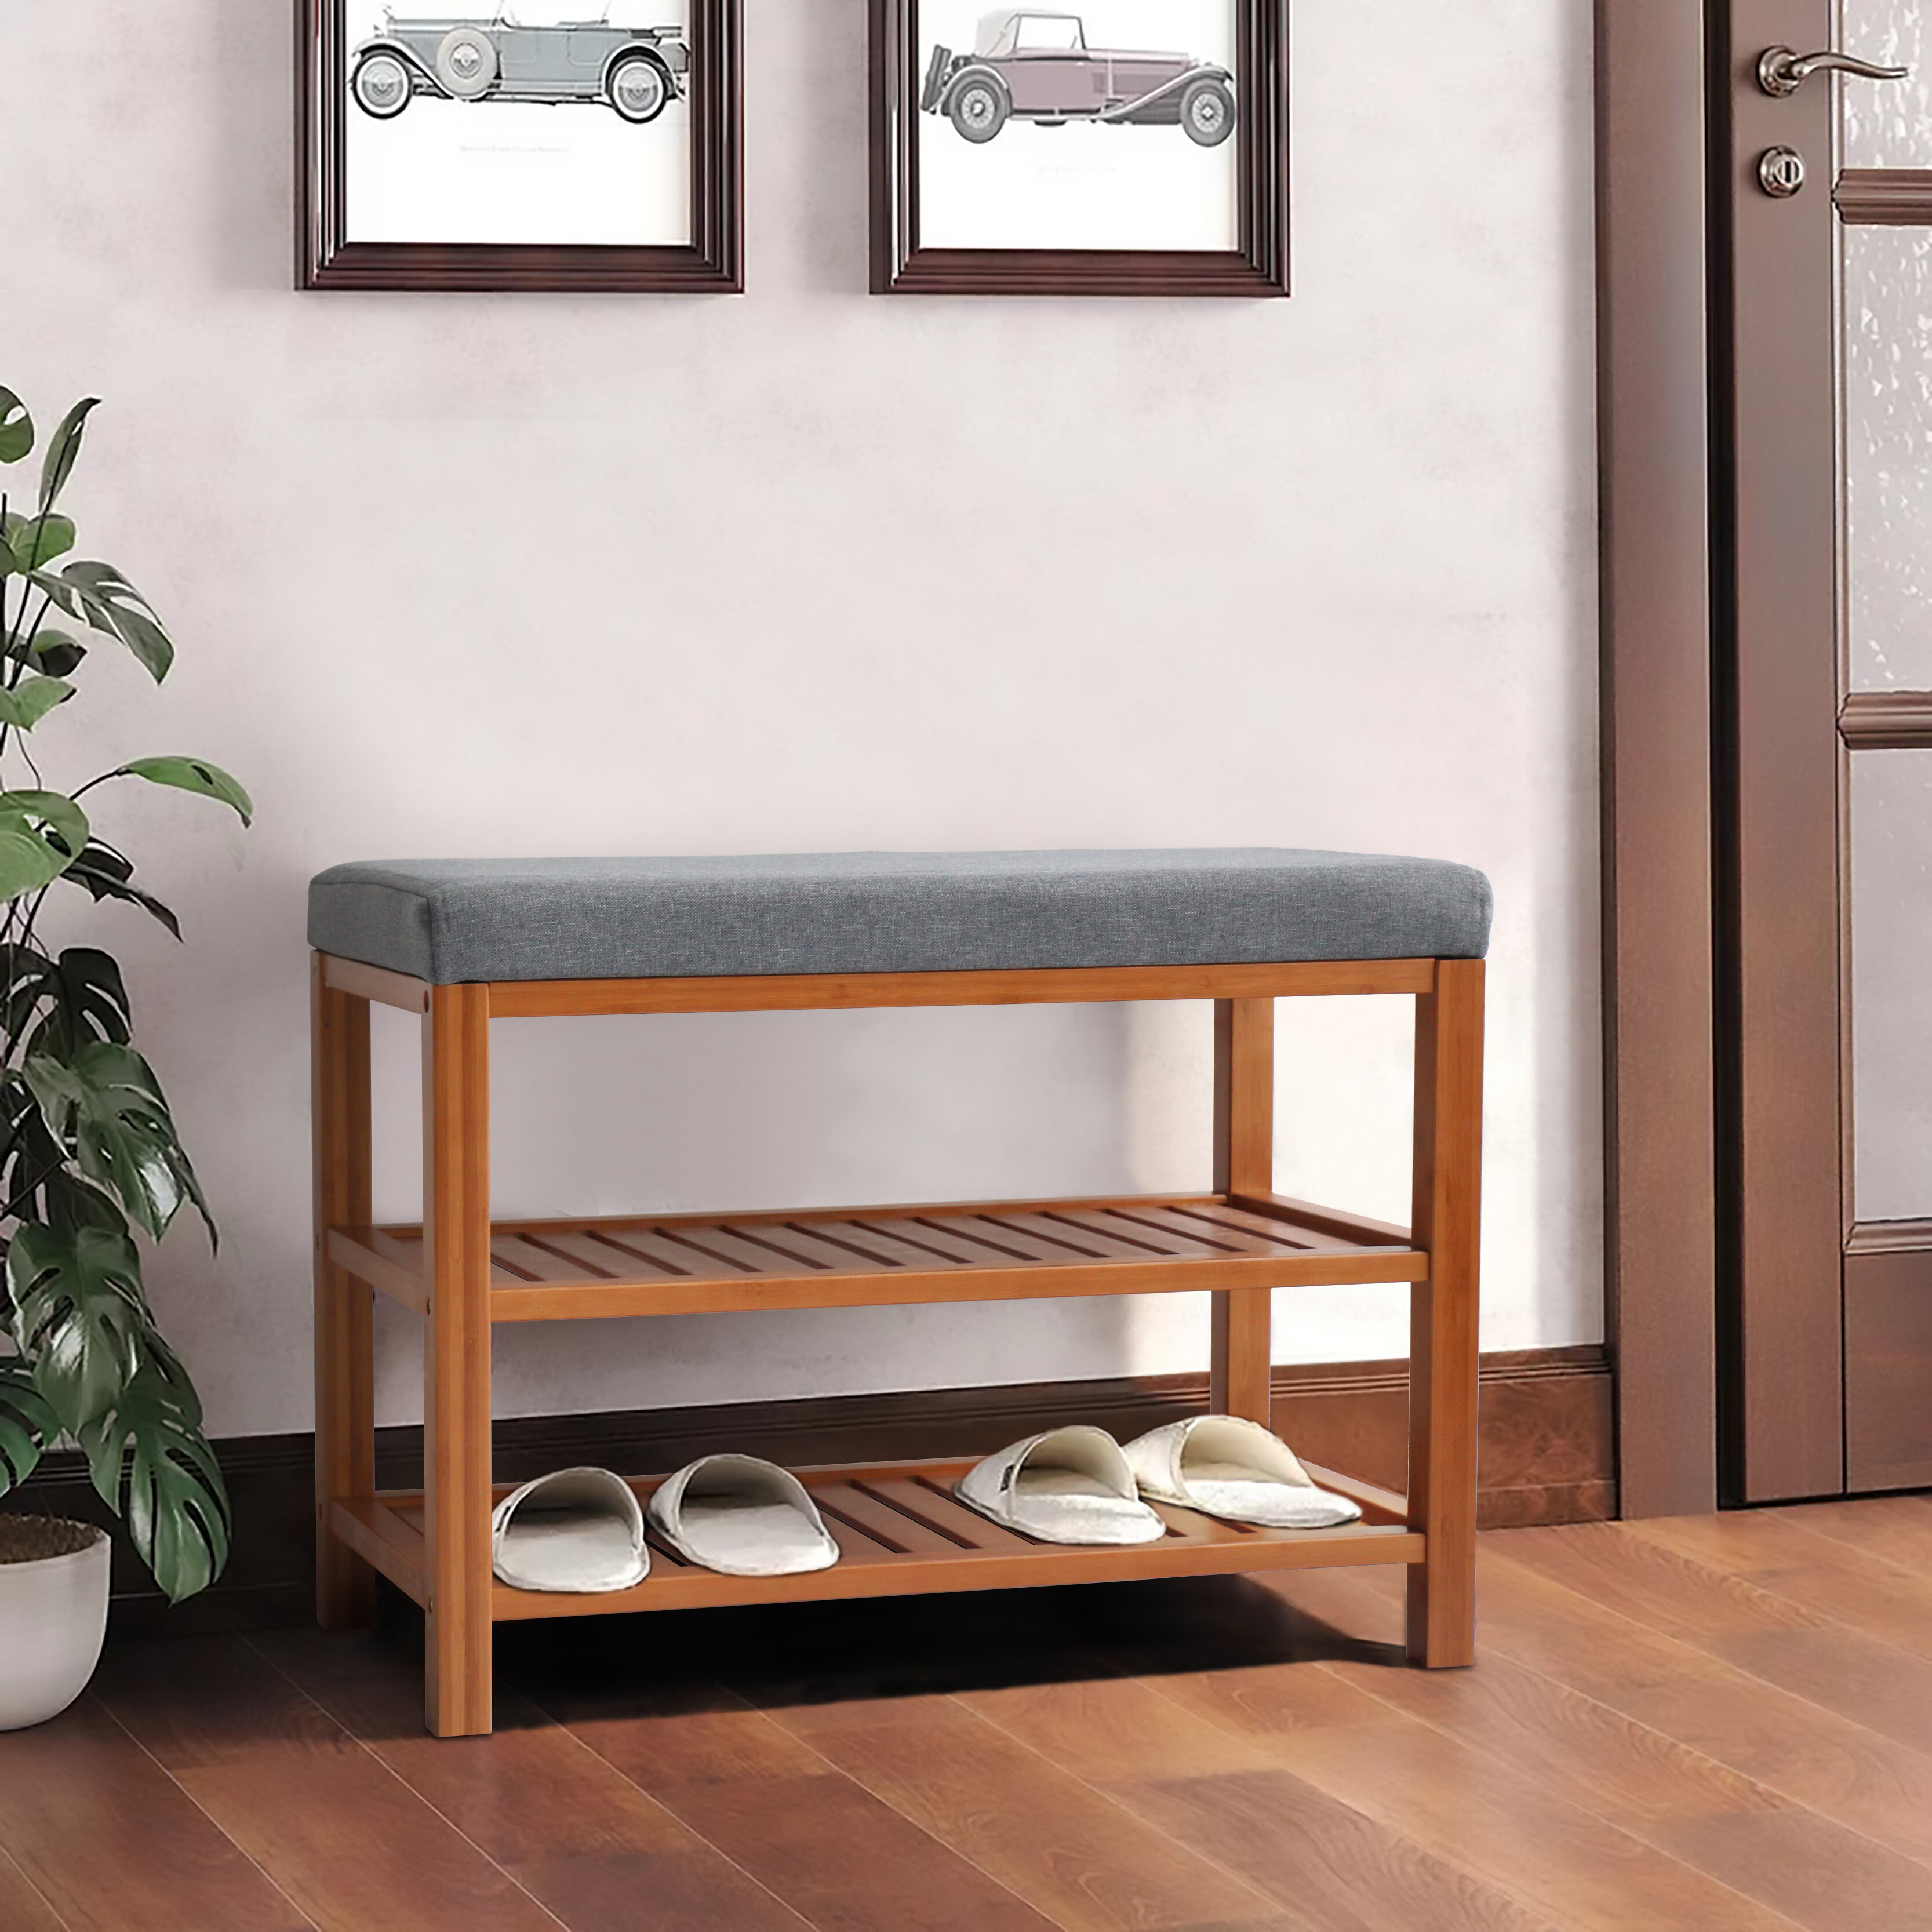 Durable Entry Bench Bathroom Bench Living Room//Entryway Organizer 3-Tier Shoe Rack Bench with Storage Shelf Bamboo Storage Bench